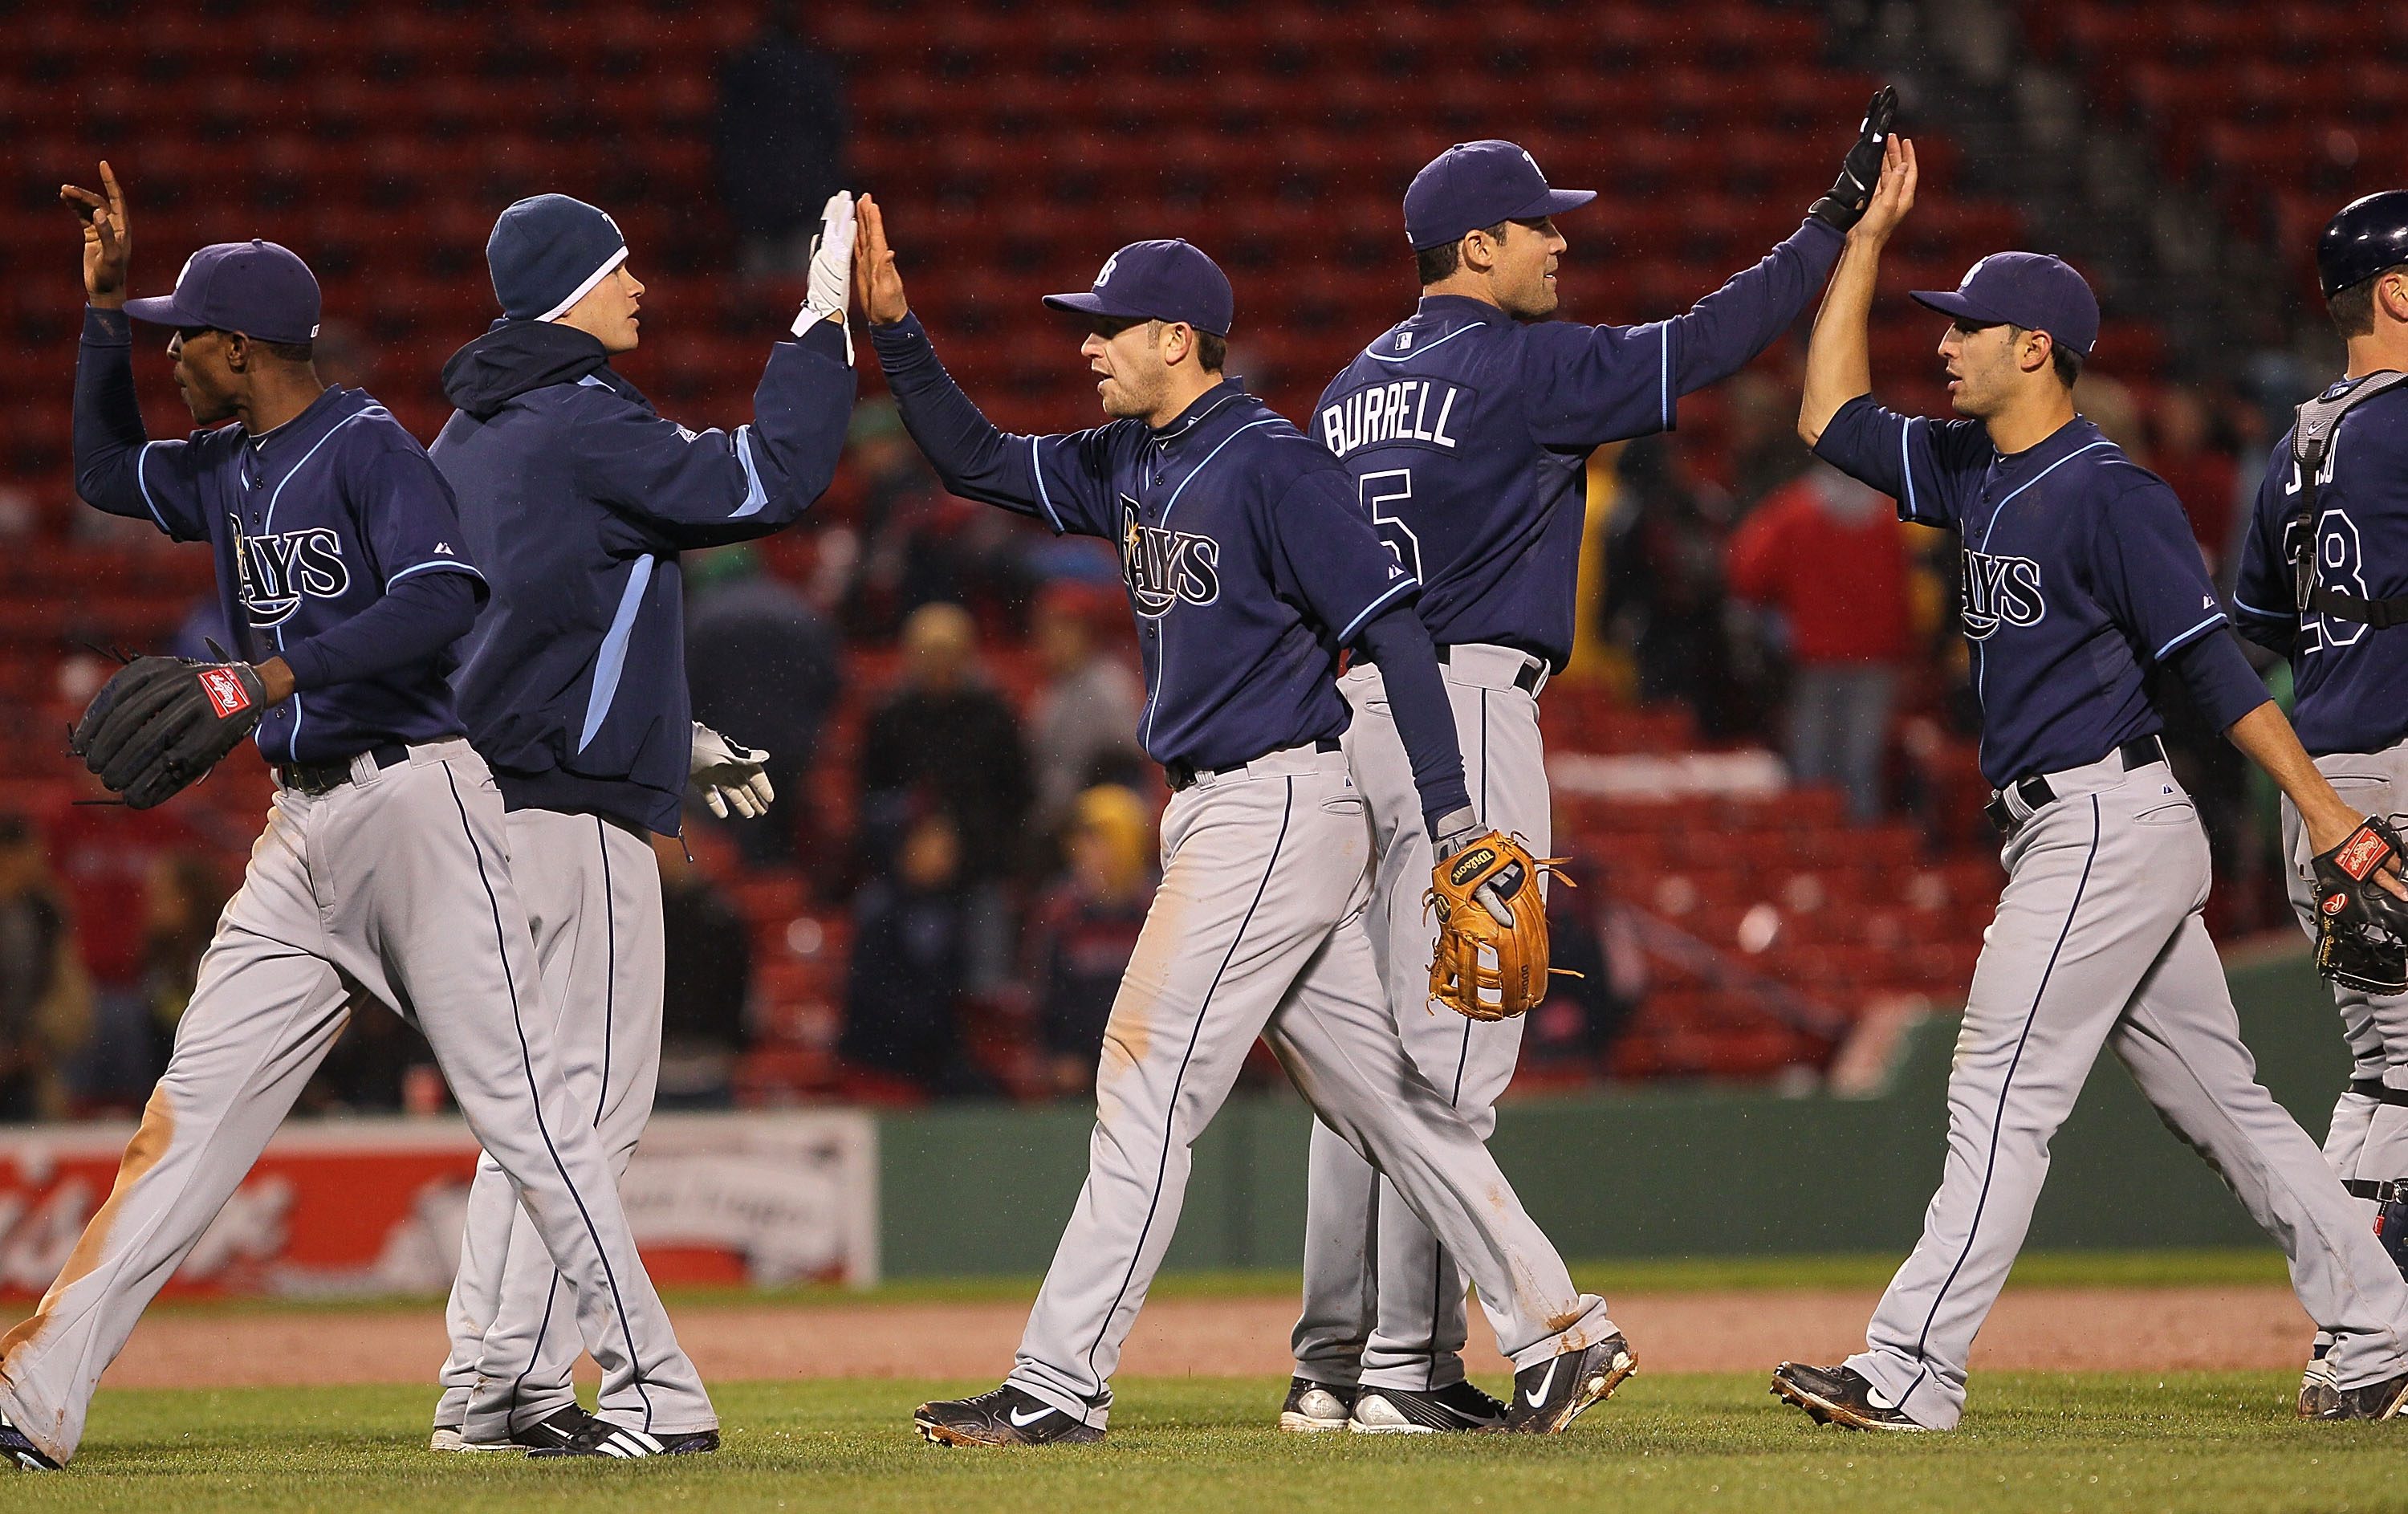 c20d436e7ab Rays players going through the line after a win at Fenway last April.